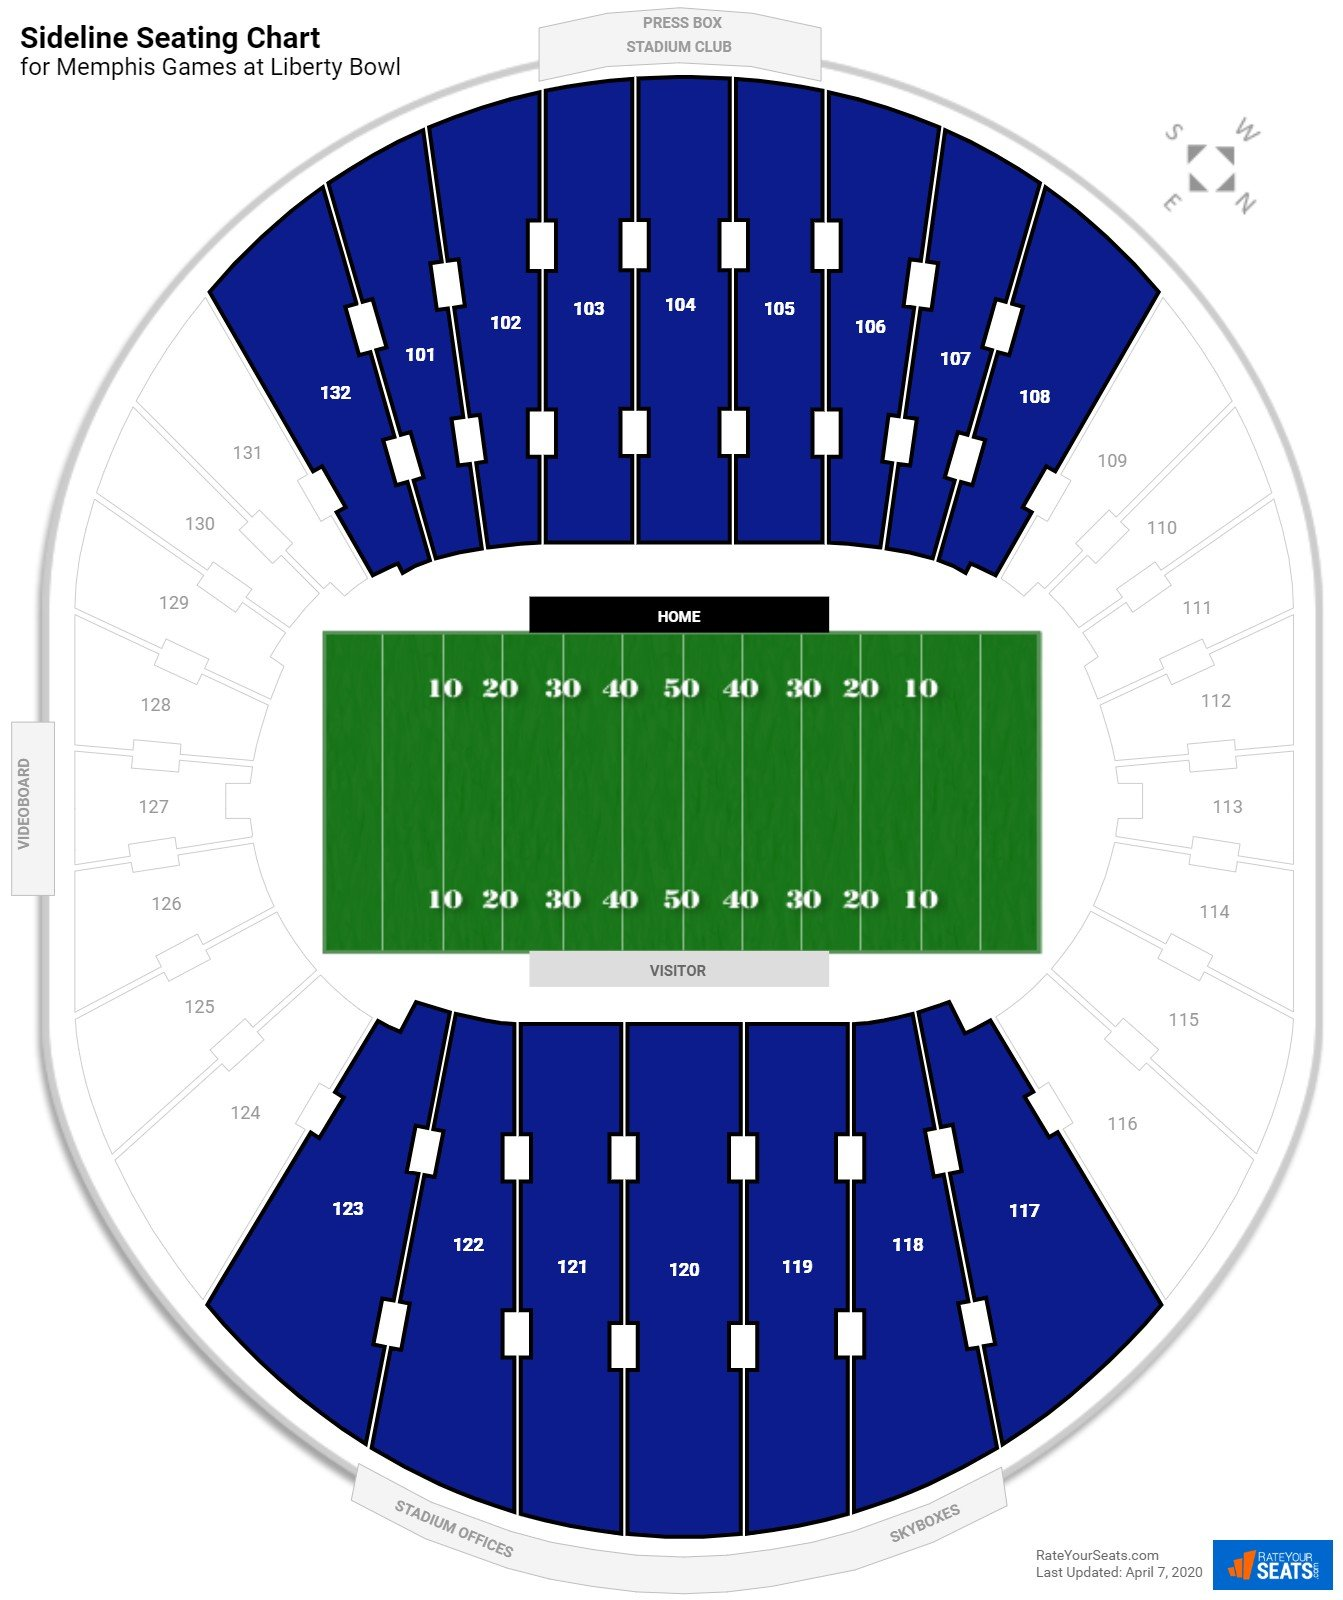 Liberty Bowl Sideline seating chart